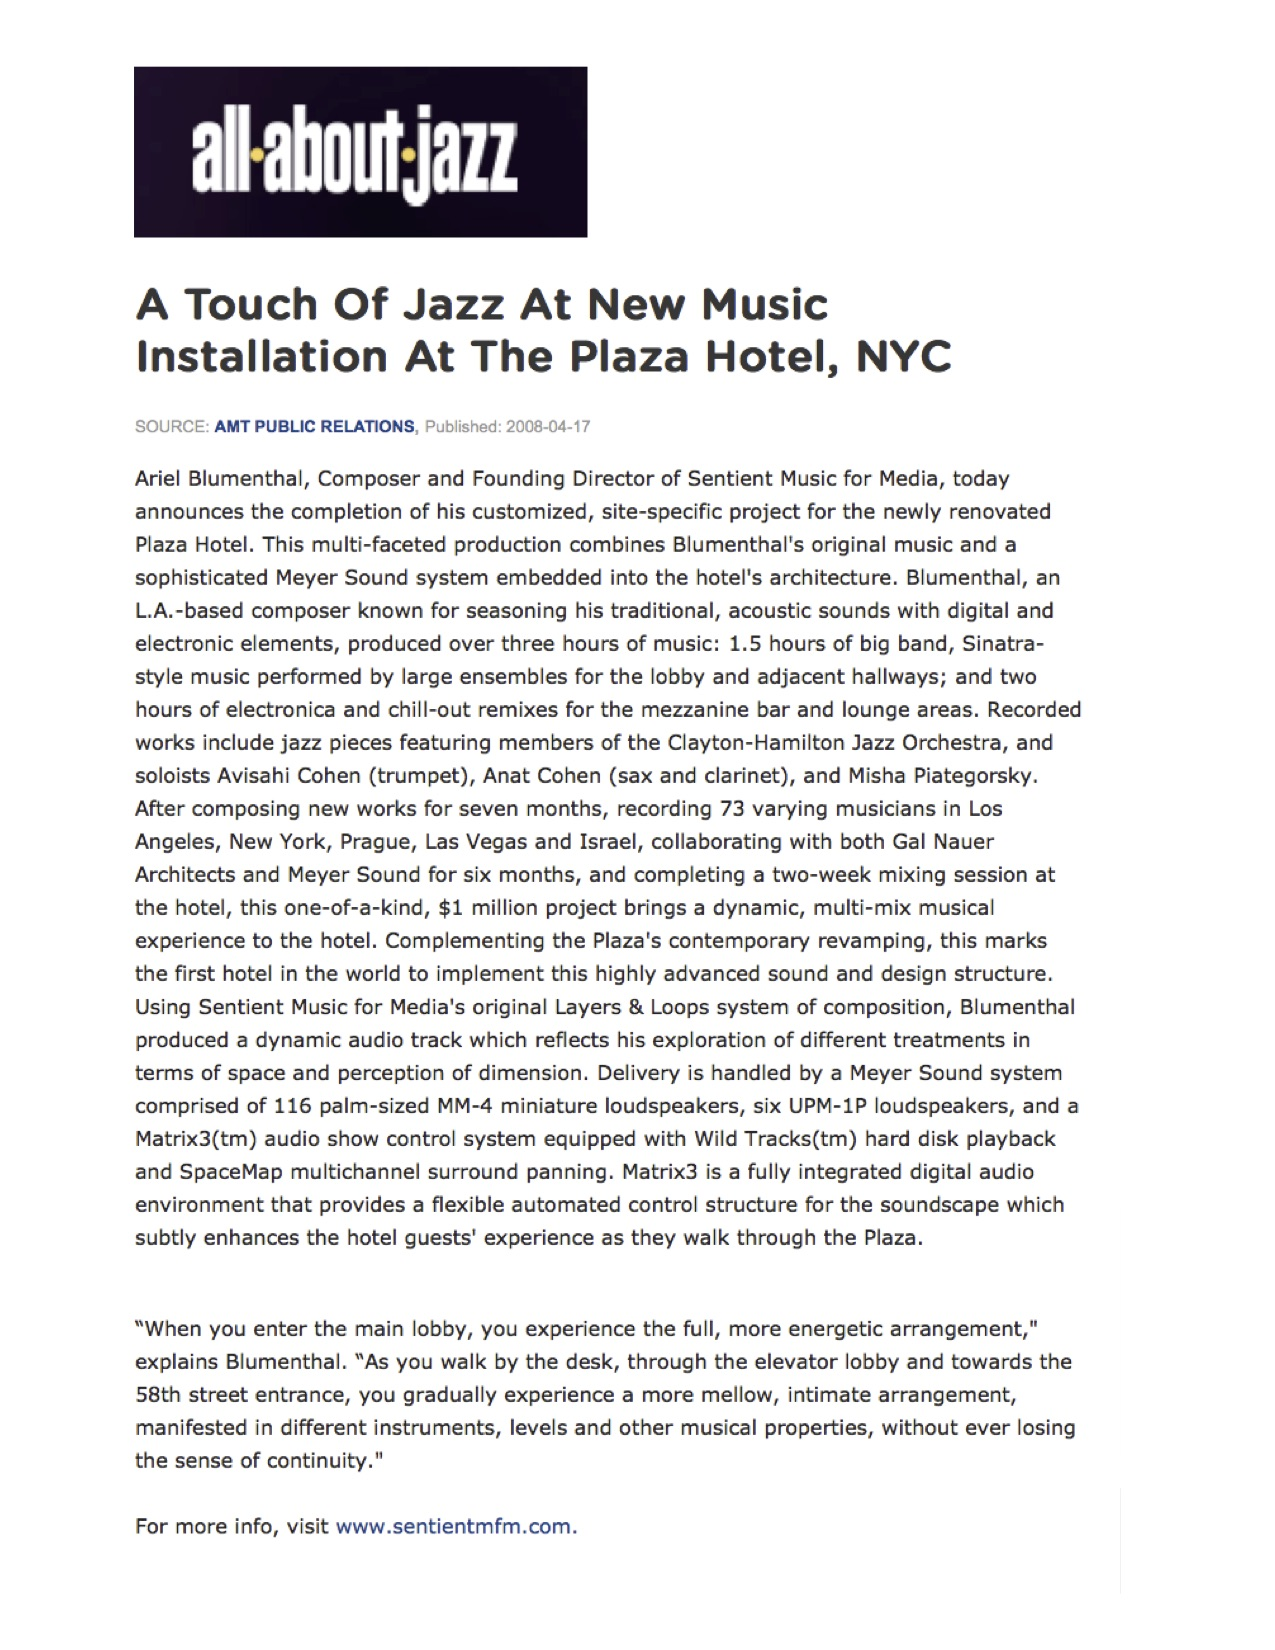 Composer Ariel Blumenthal Review: Plaza Hotel 3-dimensional music installations All About Jazz